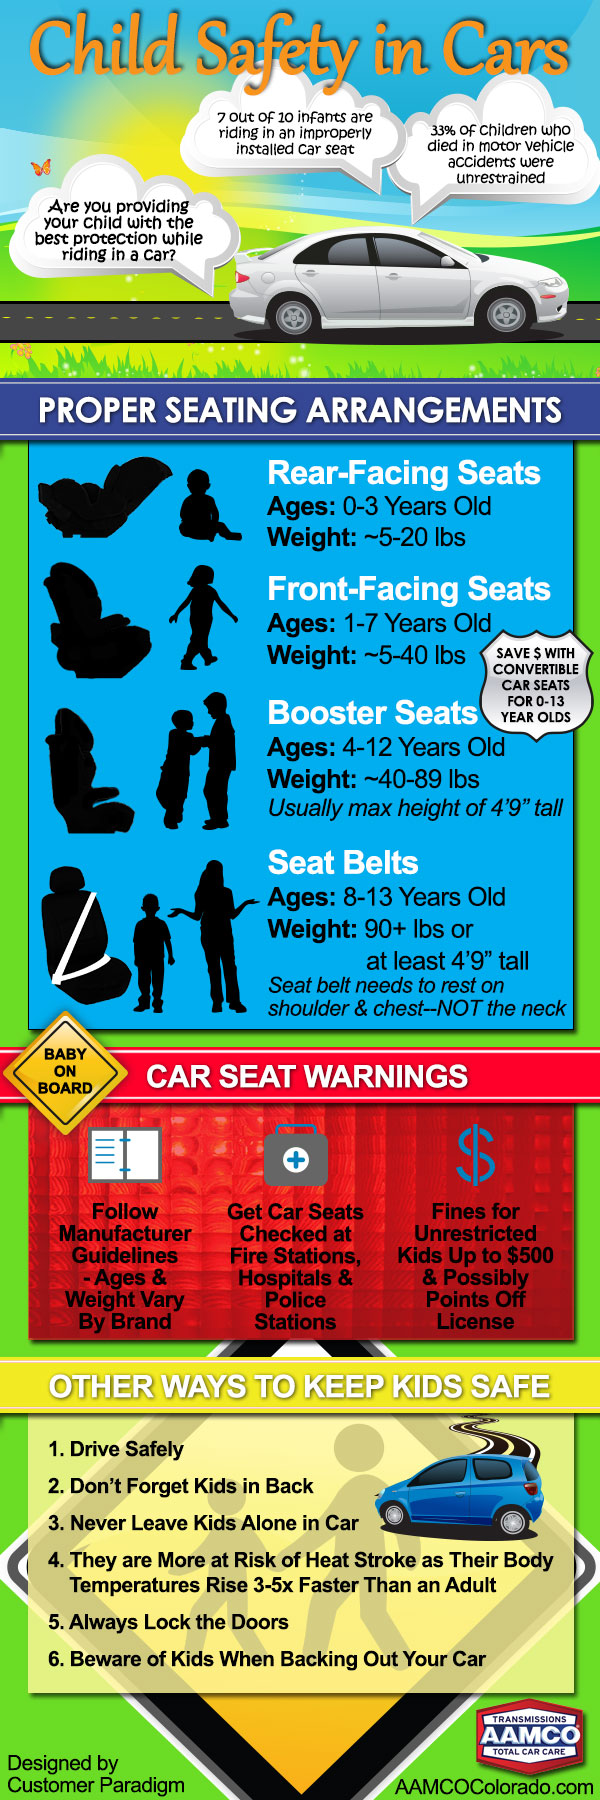 Child Safety in Cars Infographic - AAMCO Colorado